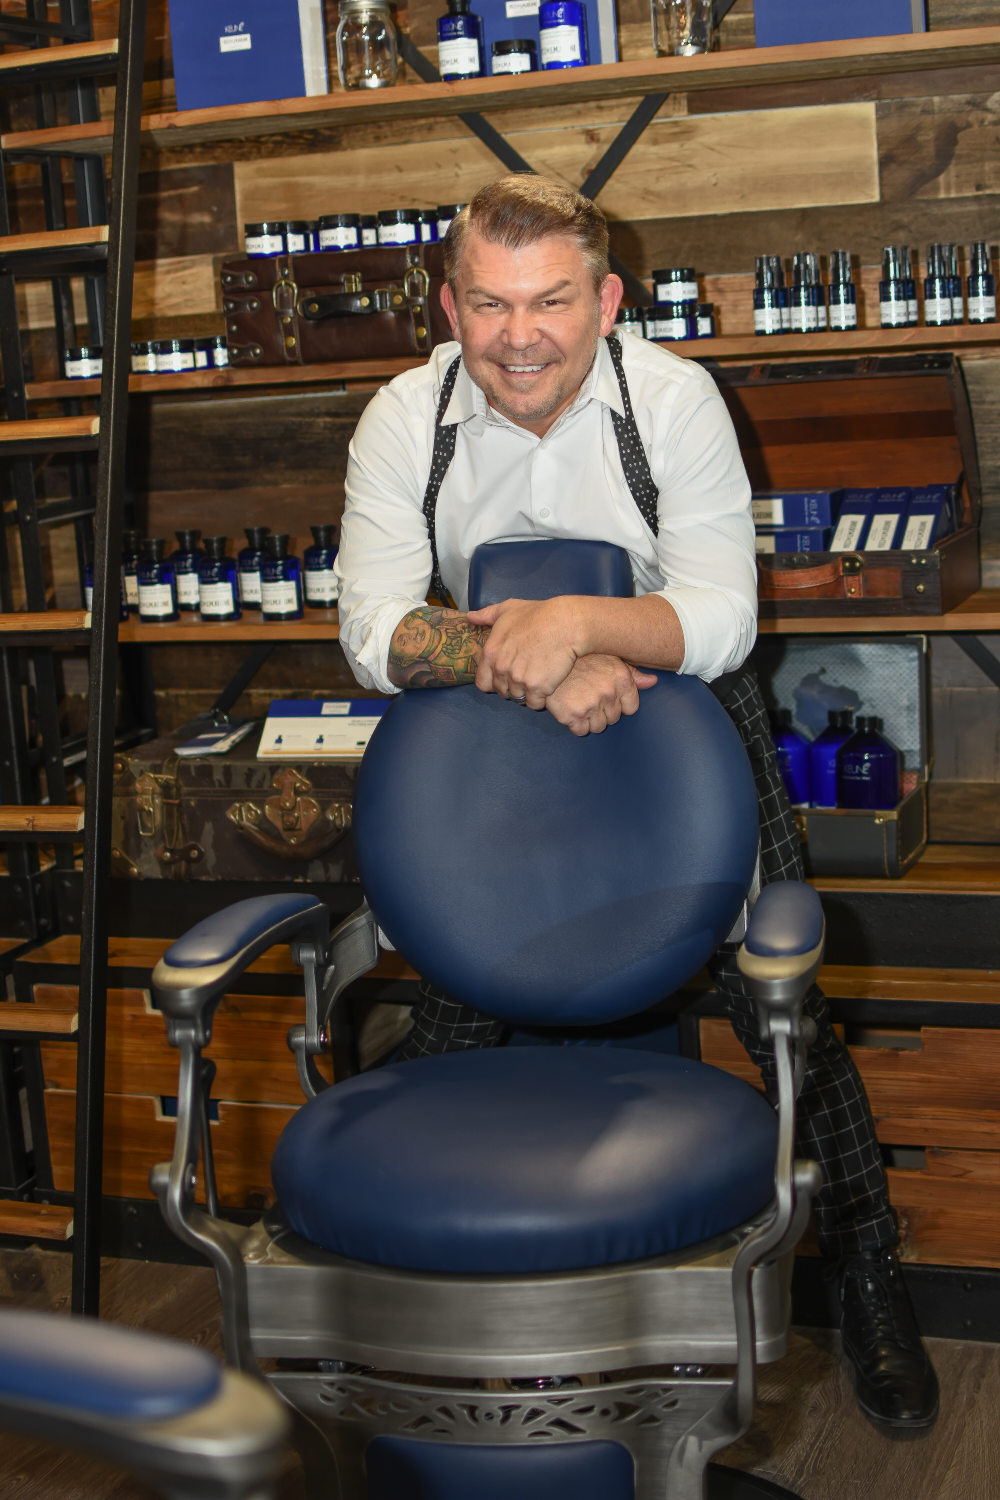 Tim Timmons, owner of Salon Gloss and the 1922 Men's Grooming Salon in Woodstock, Georgia.